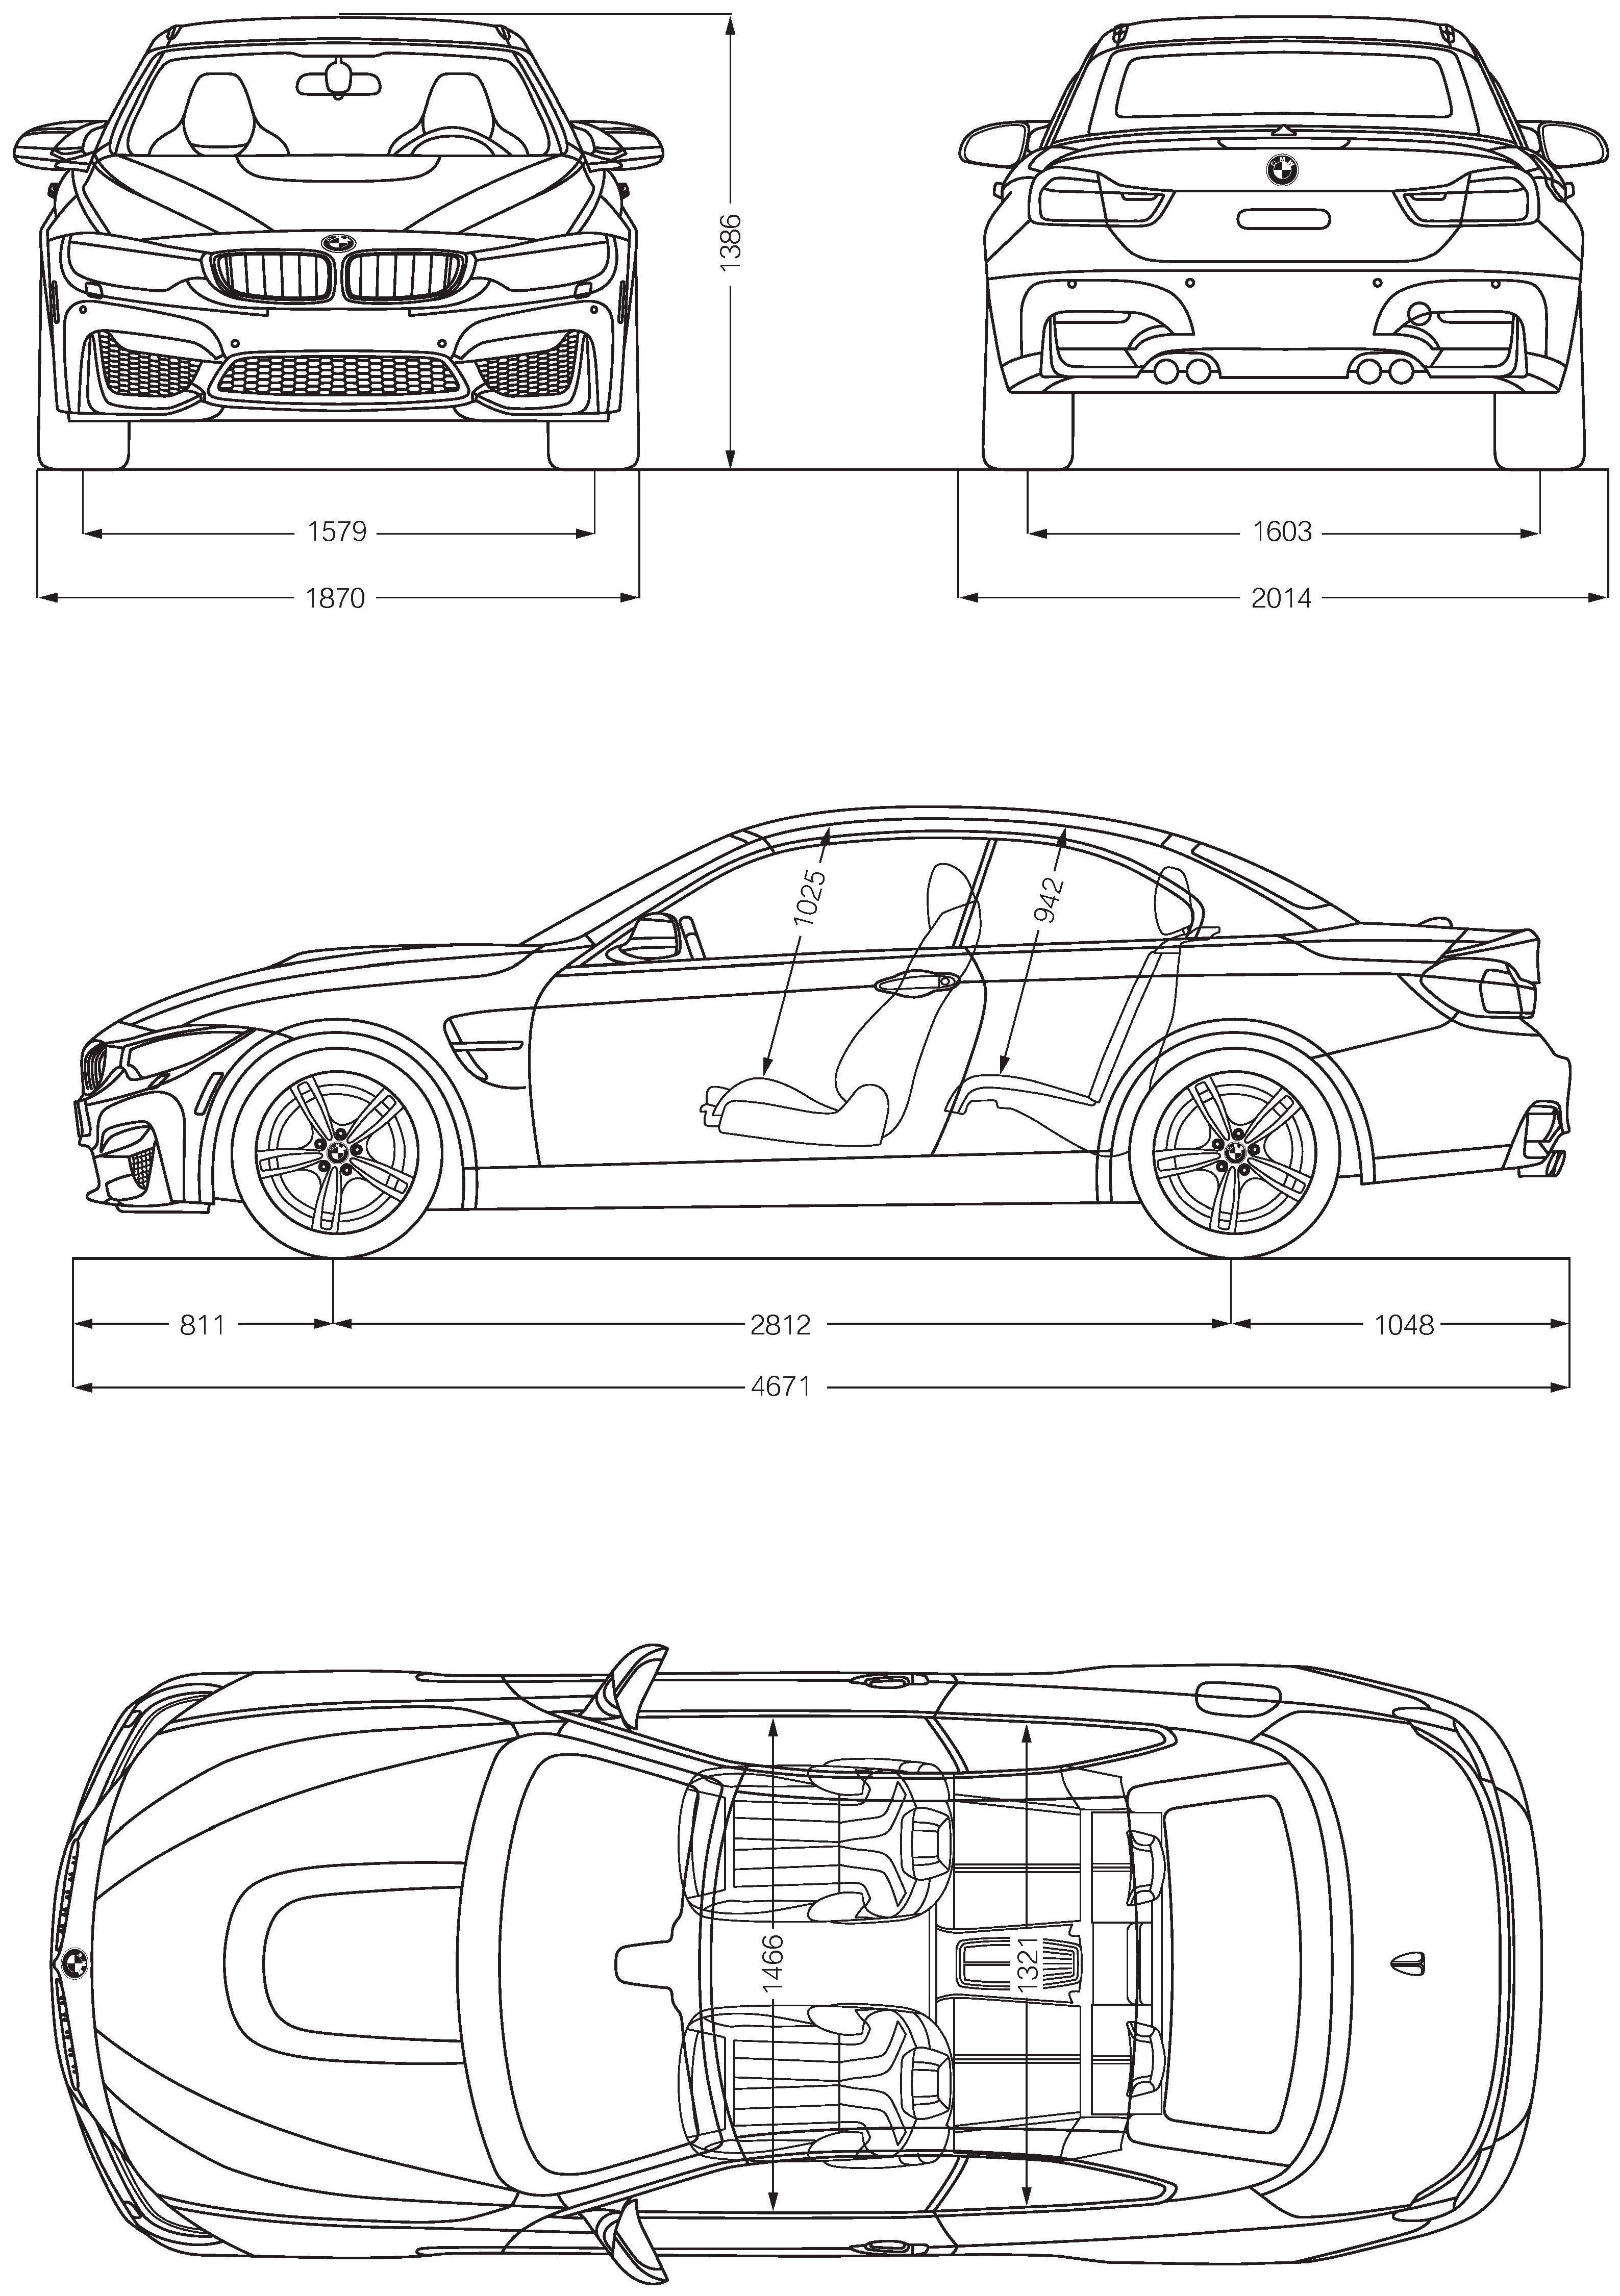 Bmw M4 Blueprint Blueprints Pinterest Bmw Bmw M4 And Bmw M4